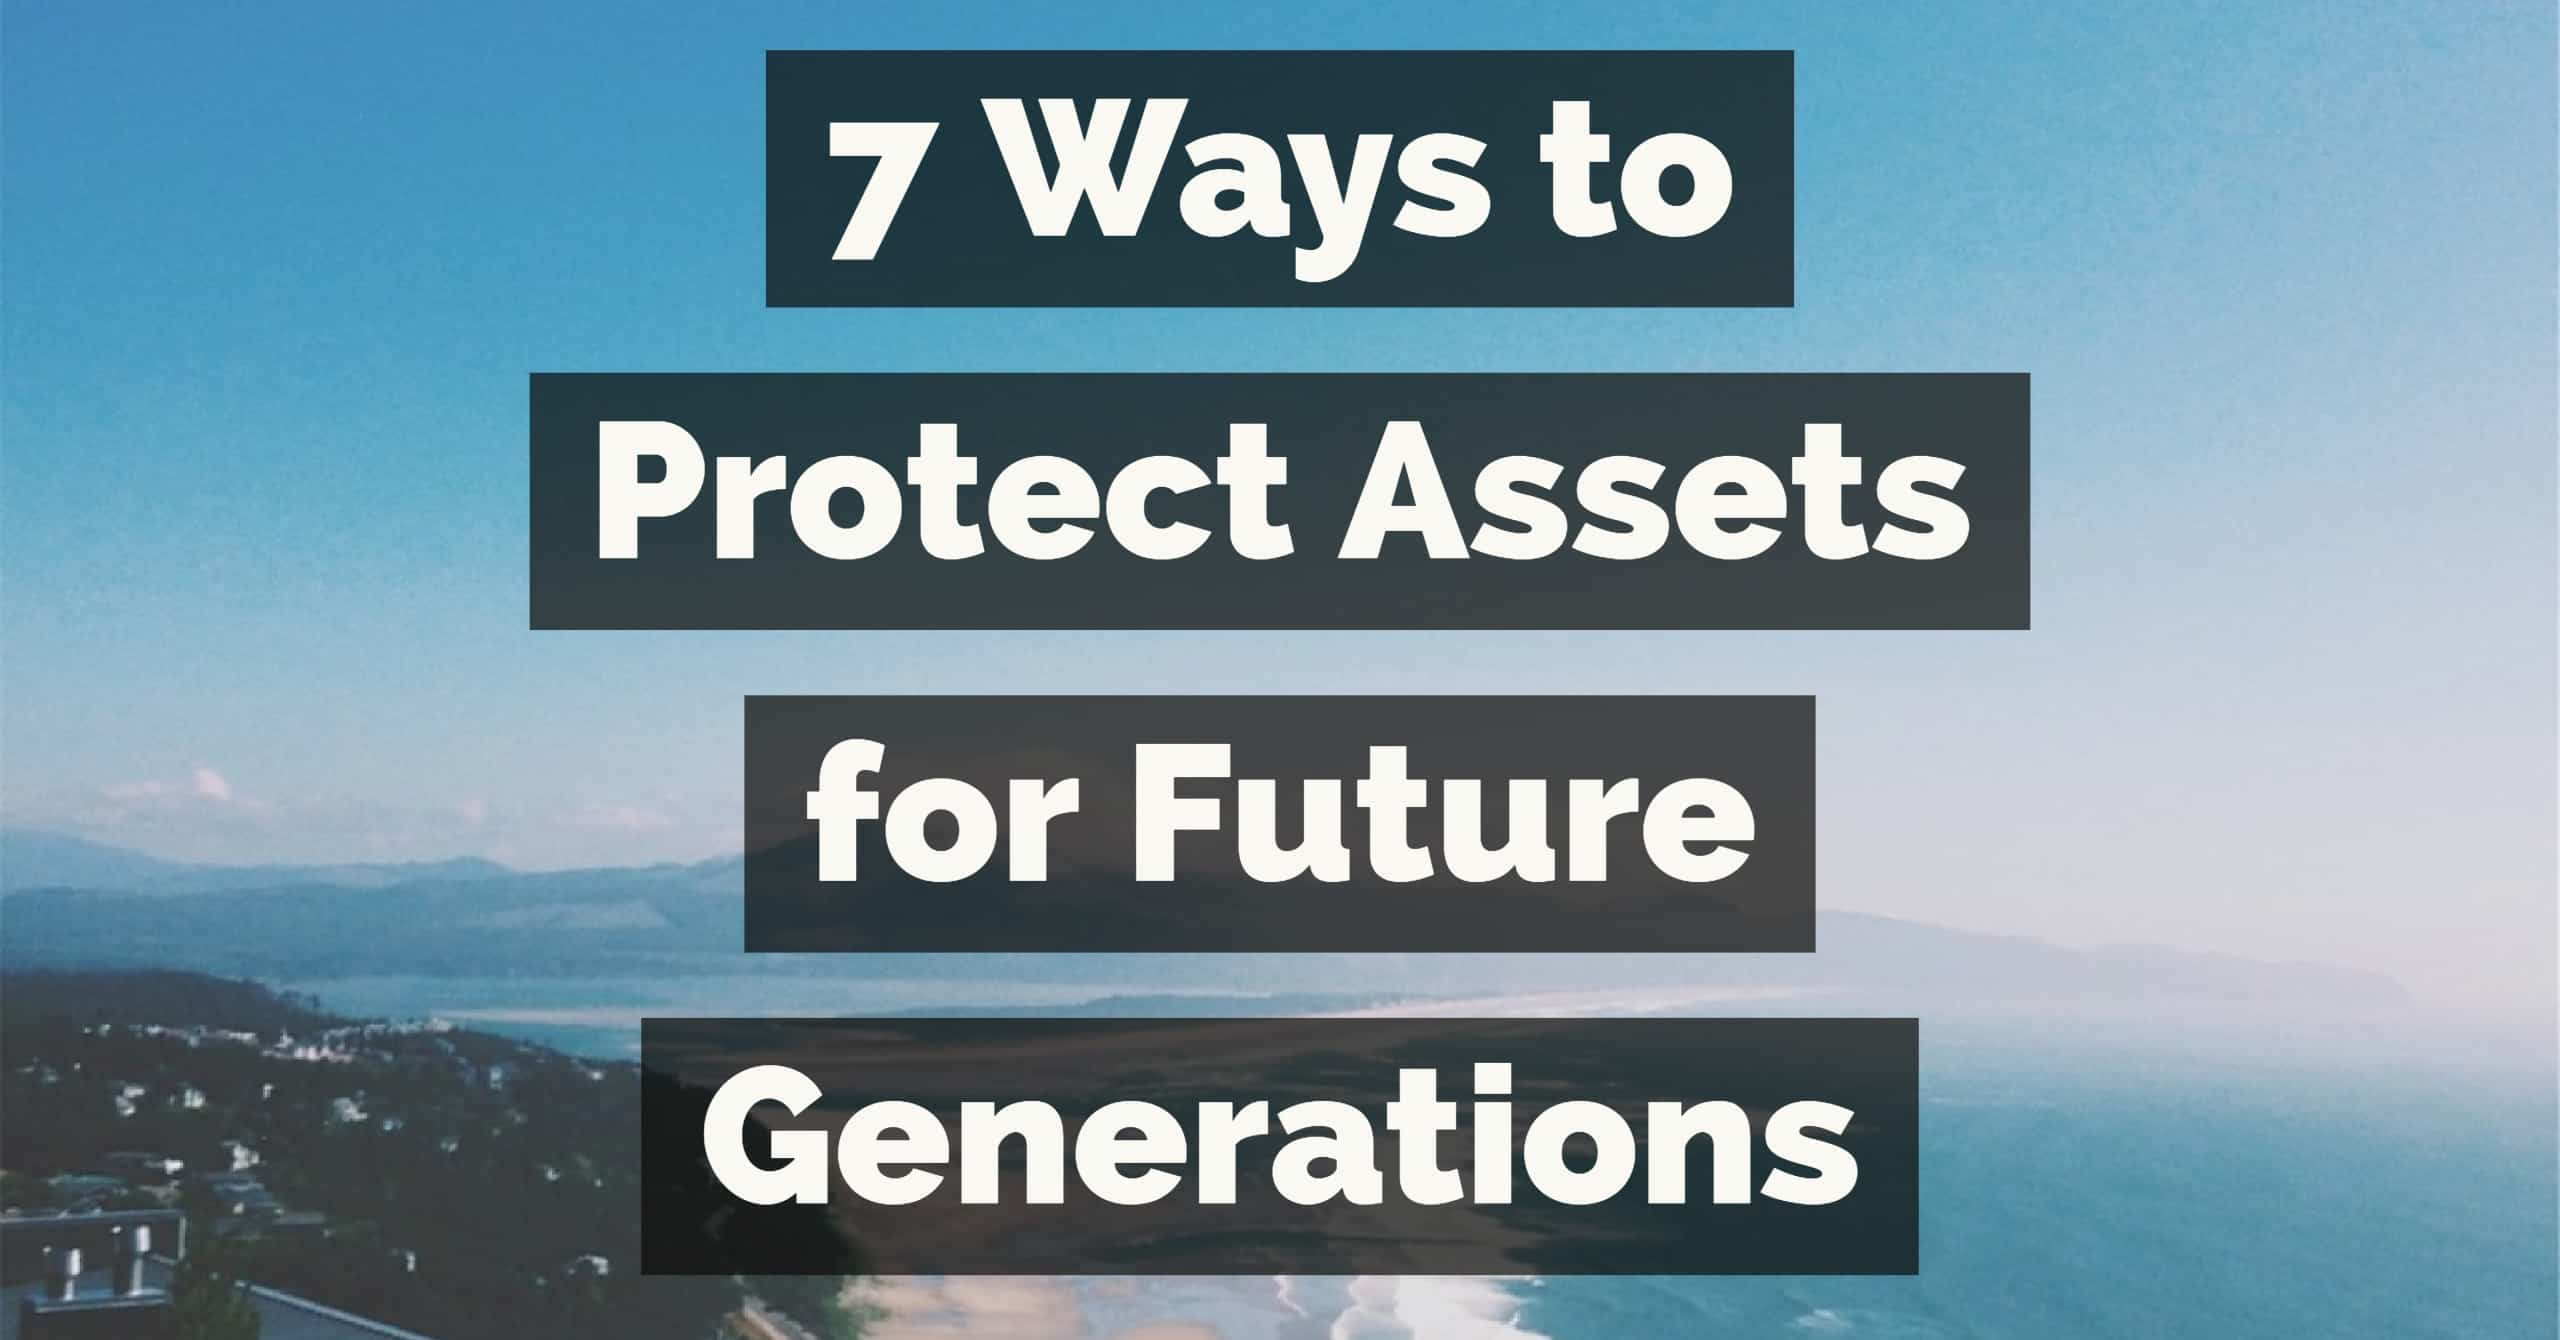 7 Ways to Protect Assets for the Future Generations